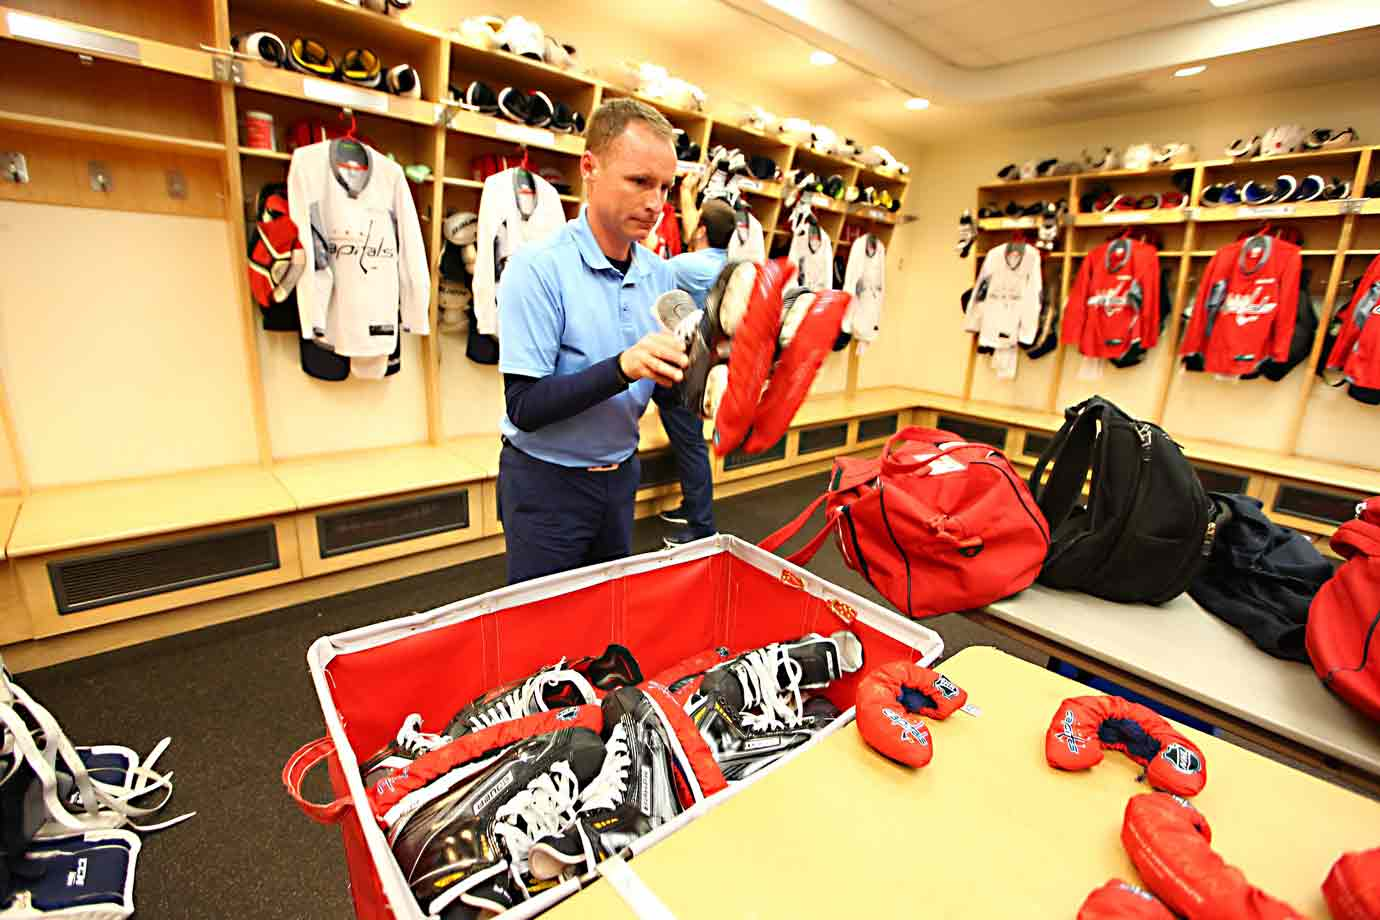 Equipment manager Brock Myles tends to the skates.